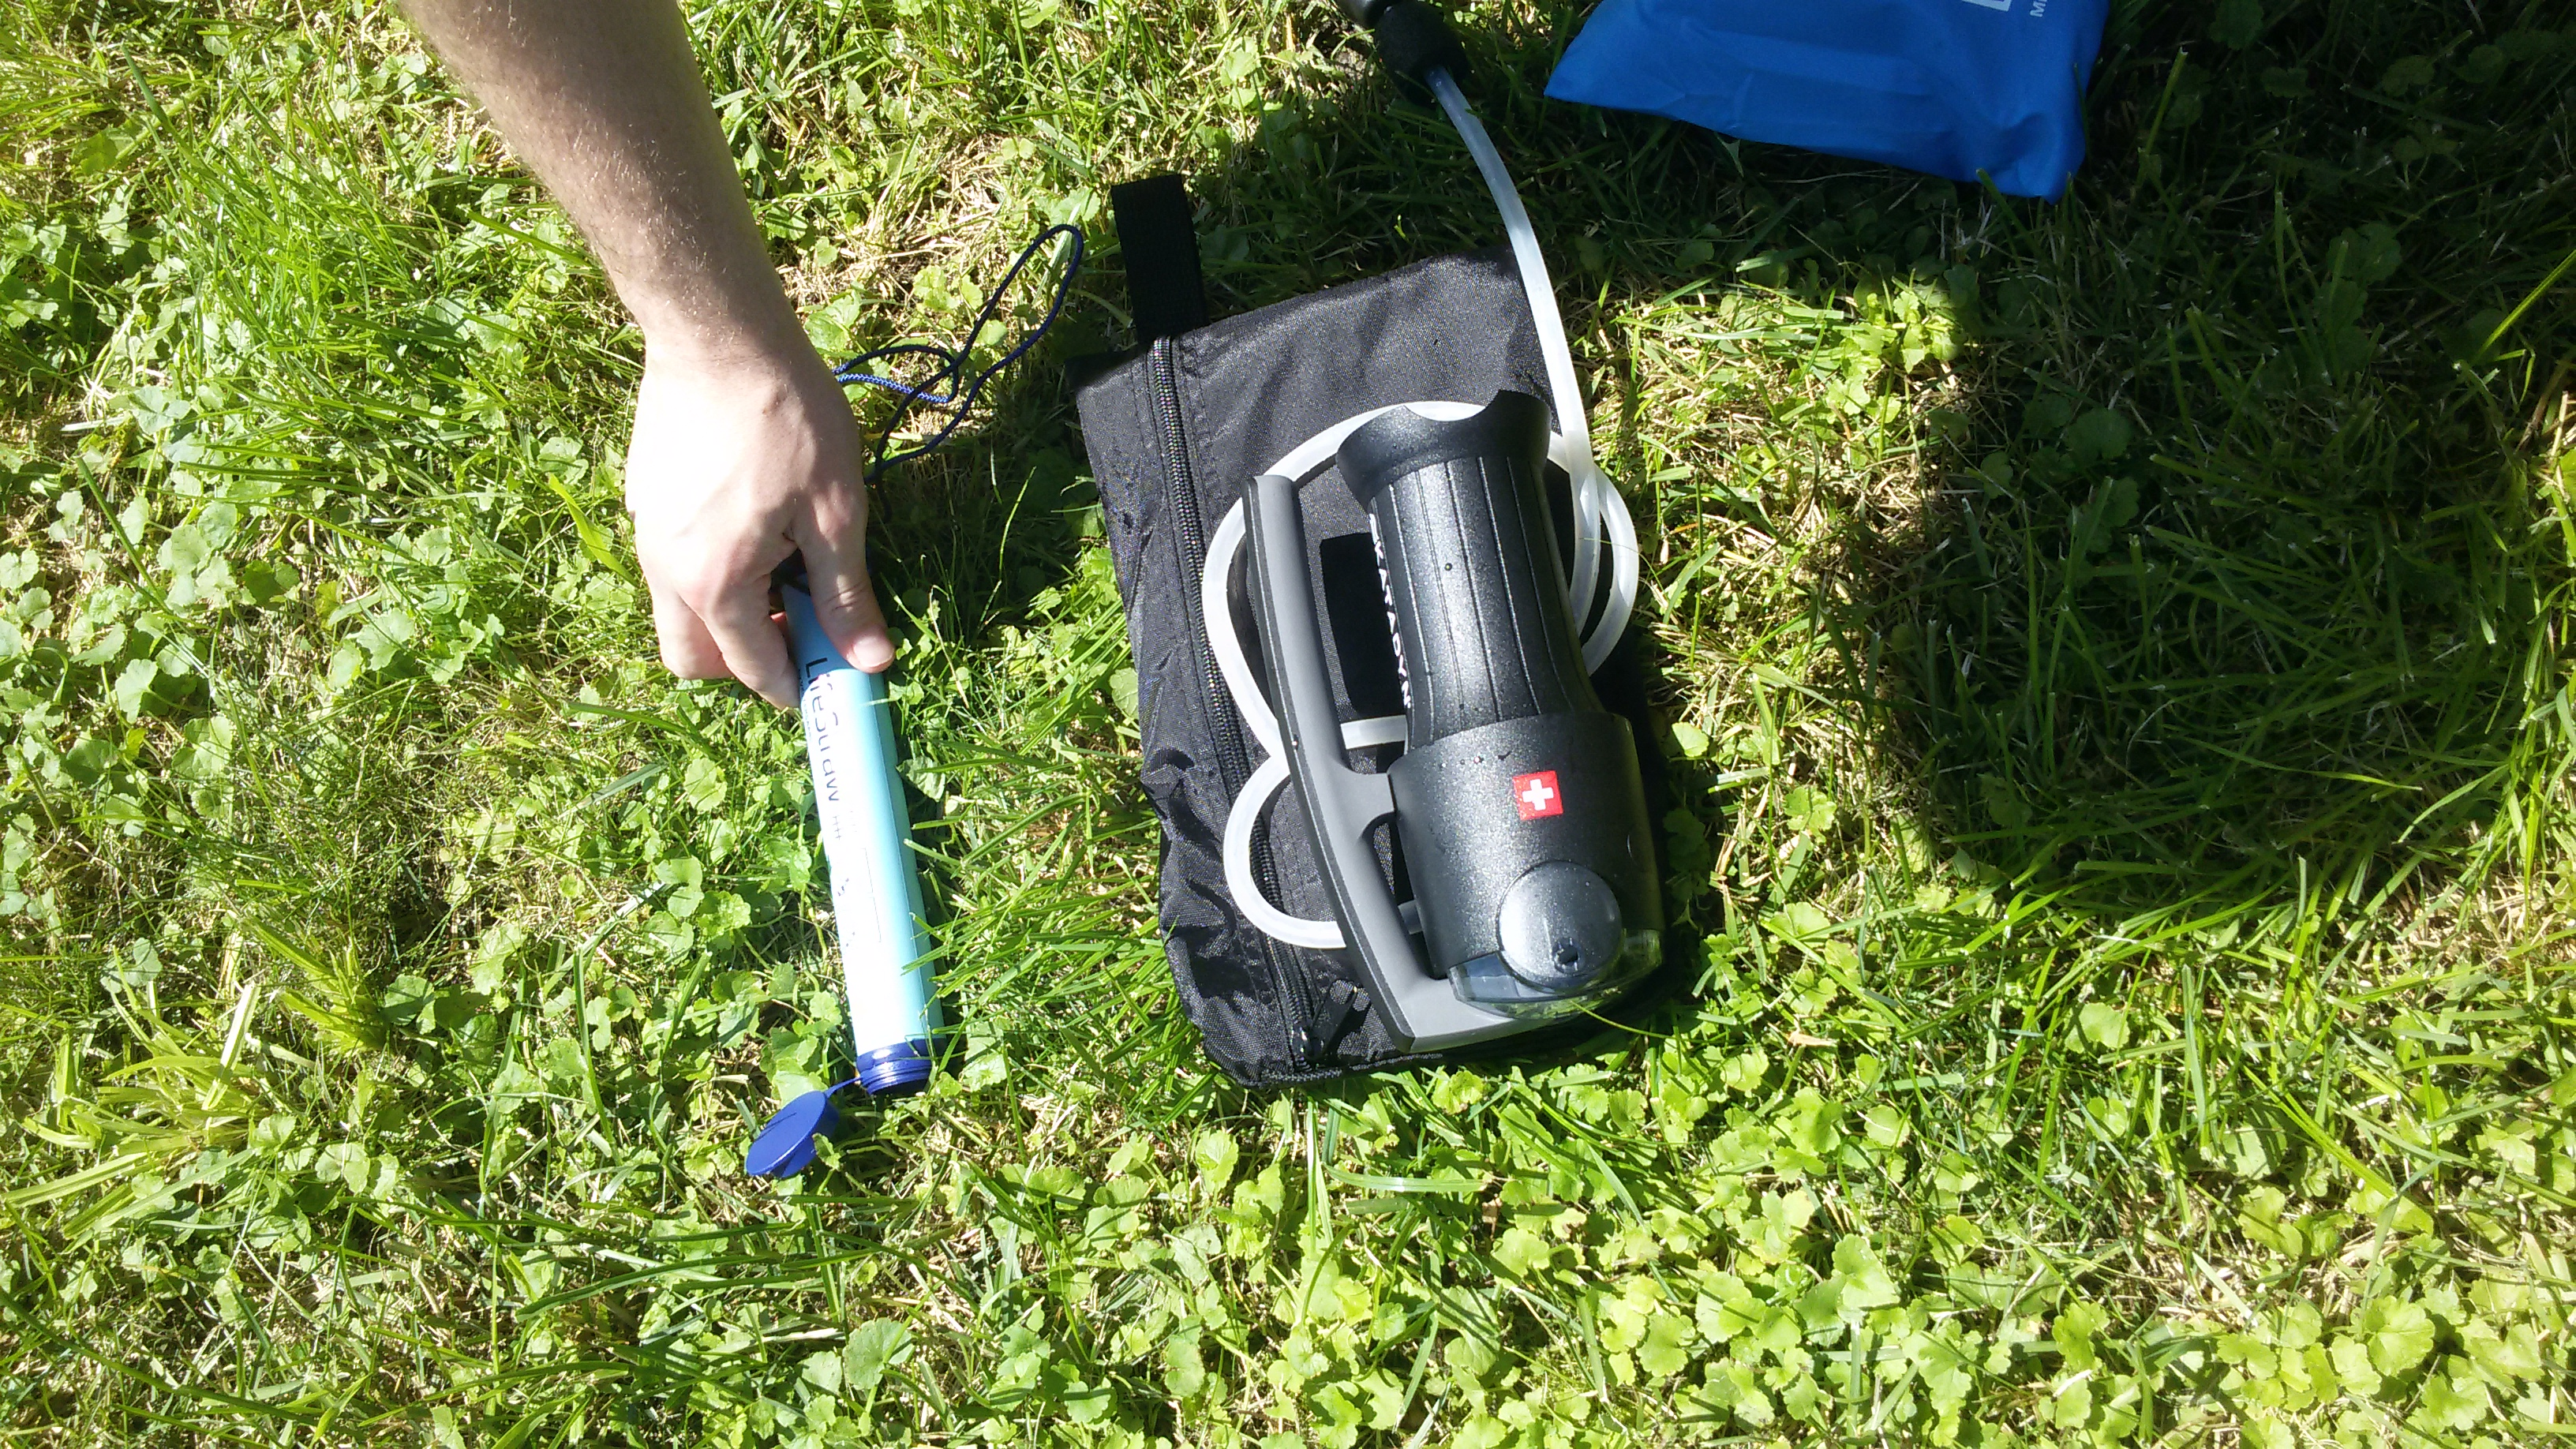 Lifestraw compared to other water filters